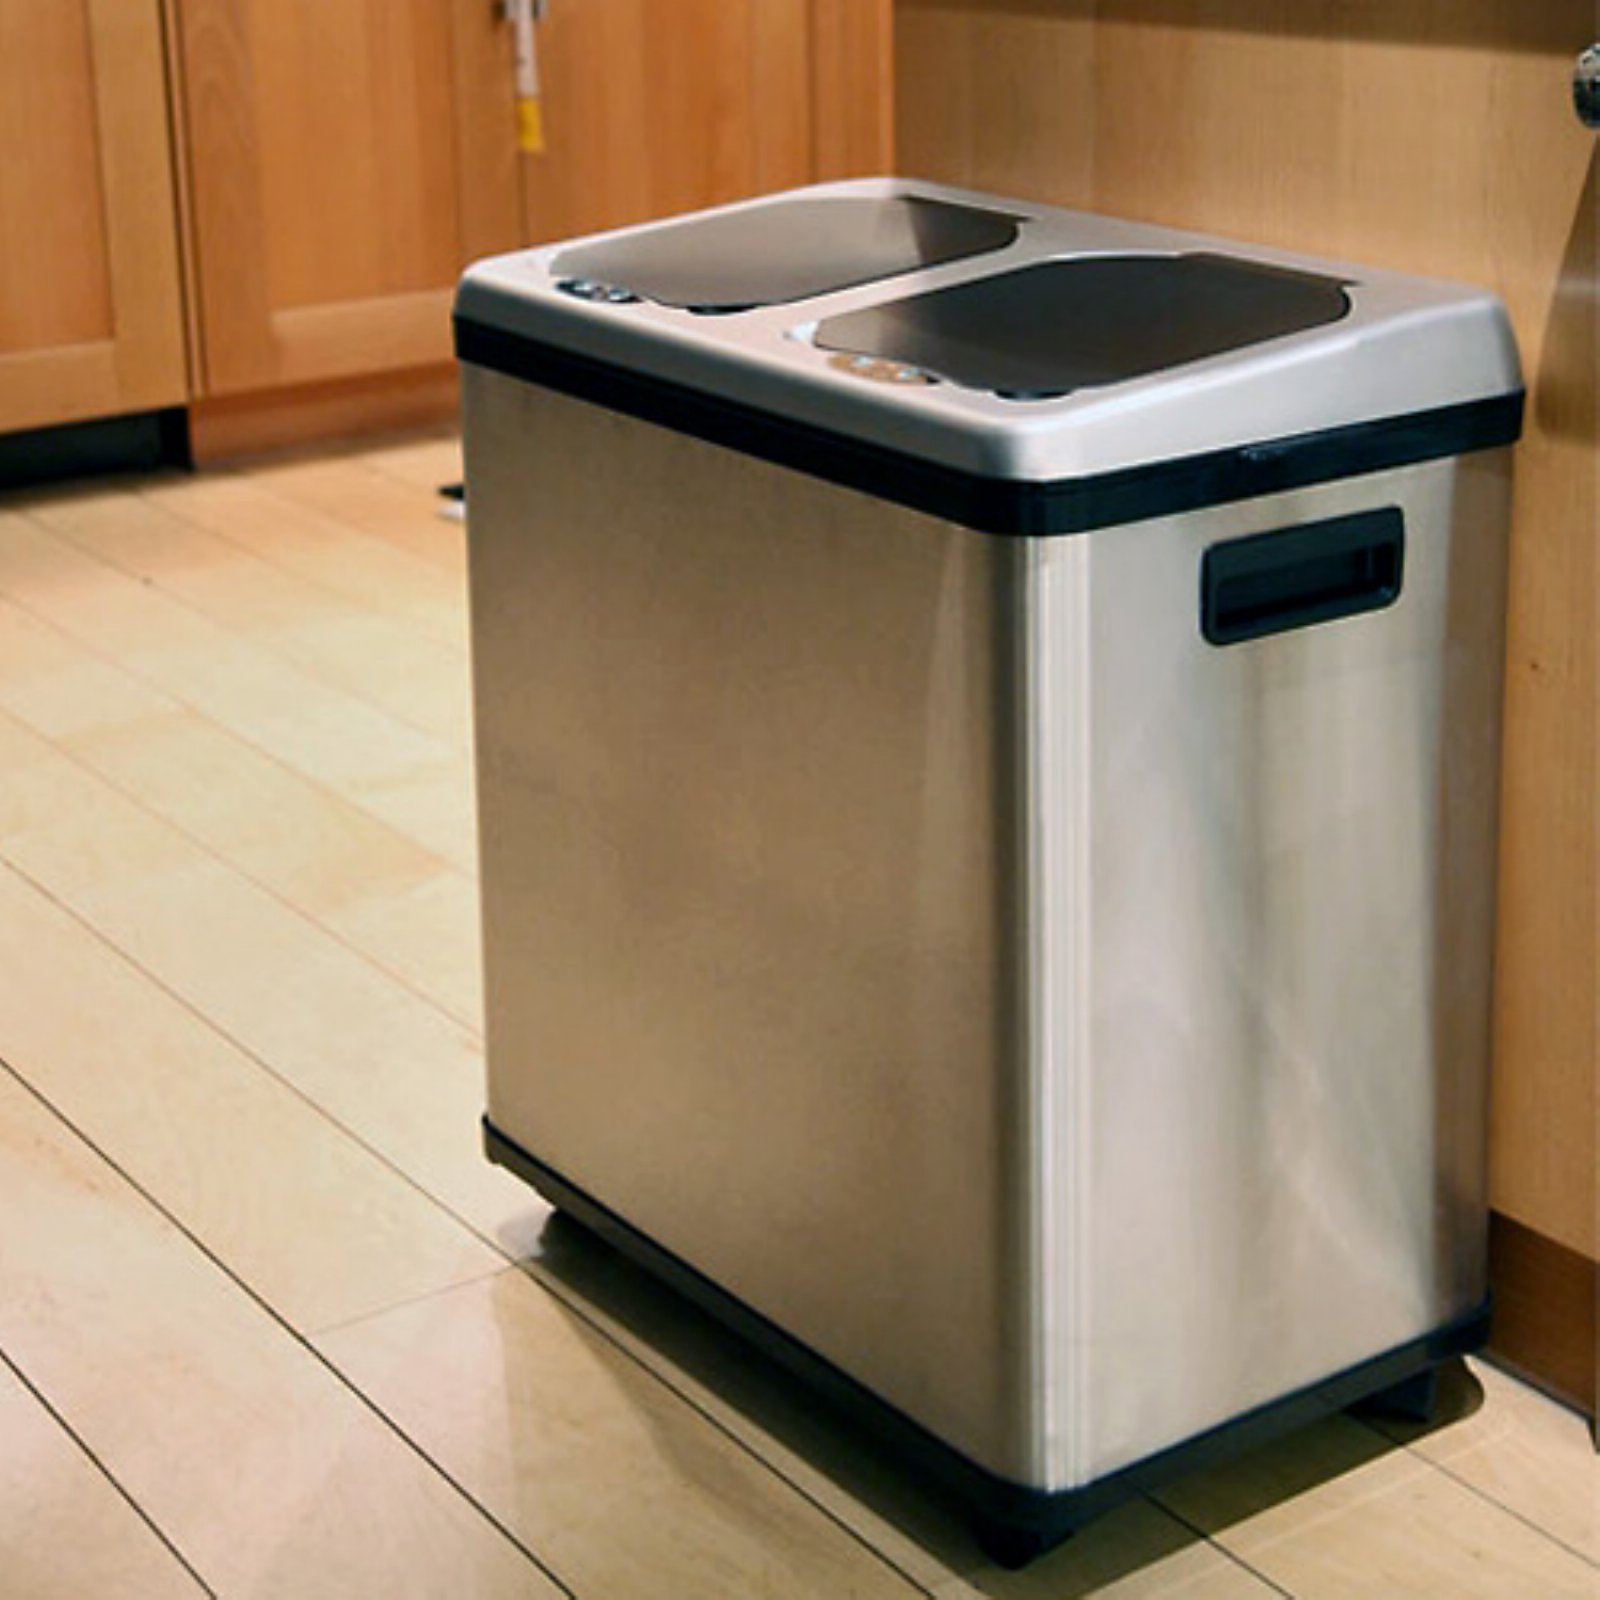 Stainless Steel Recycling Bins Itouchless 2 Compartment Recycle Touchless Trashcan 16 Gal Stainless Steel Recycling Bin